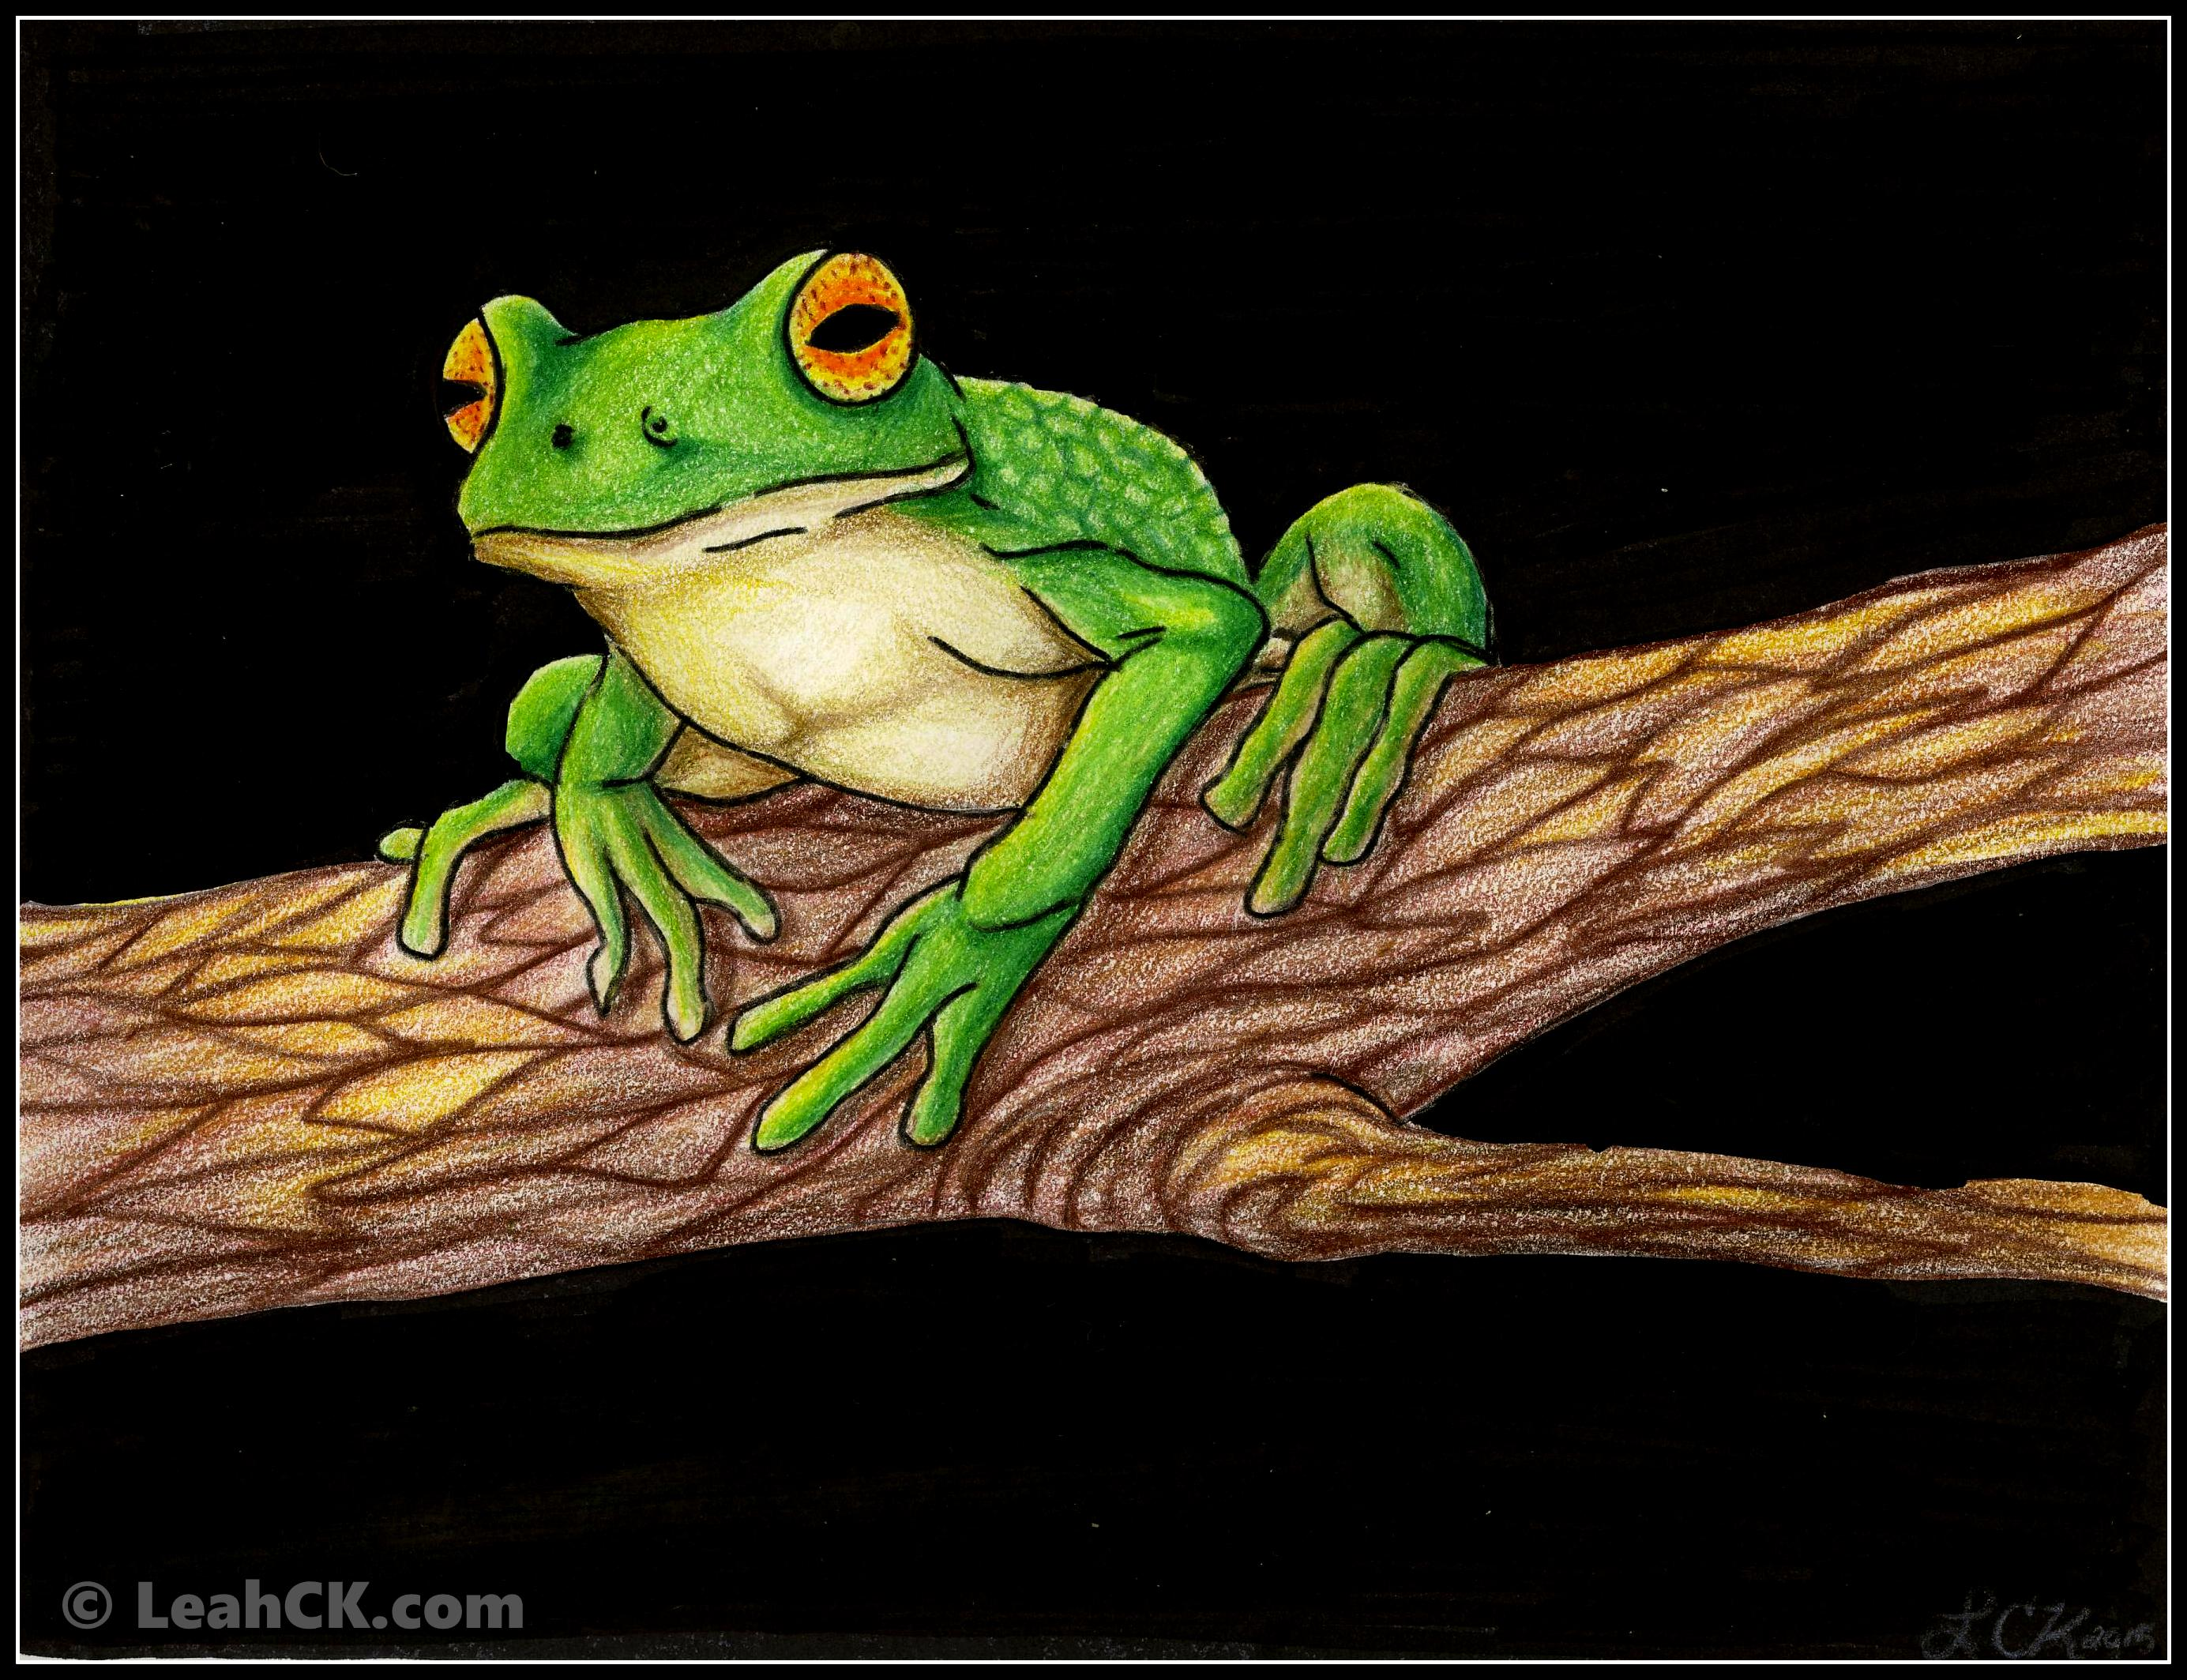 White_lipped_tree_frog